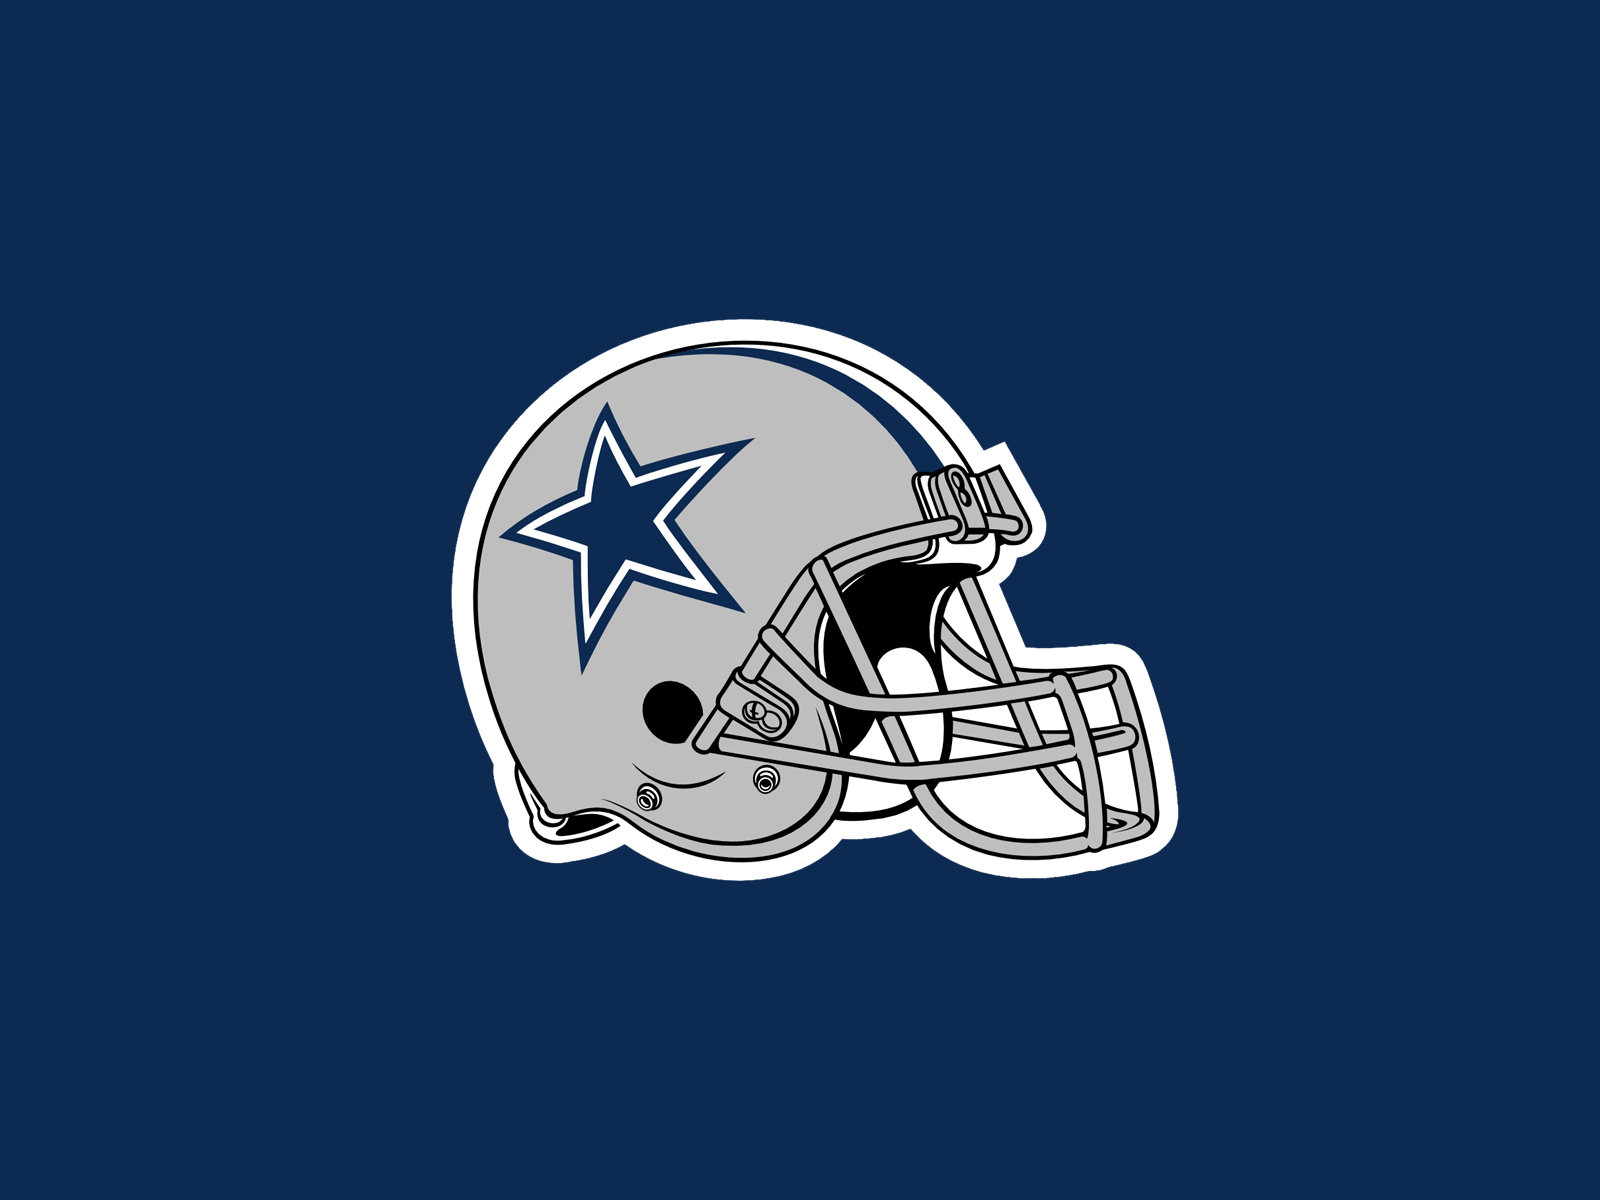 Download hd 1600x1200 Dallas Cowboys PC background ID:101578 for free